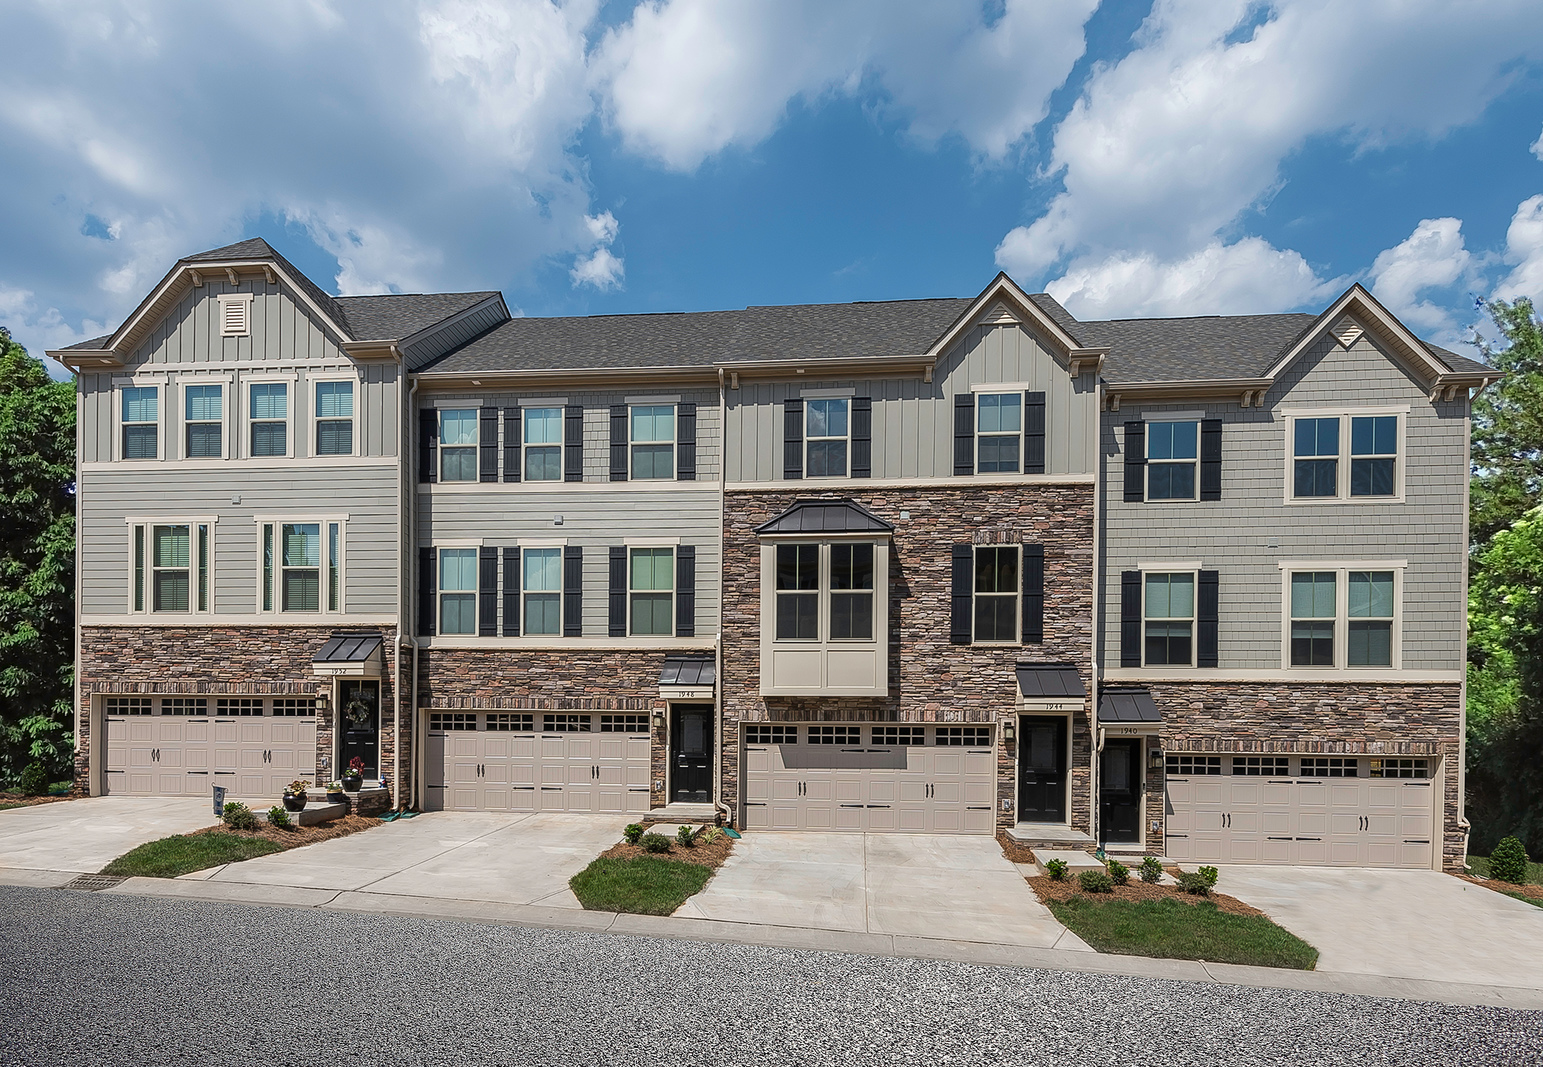 New Homes For Sale At Market Point Townes In Greenville Sc